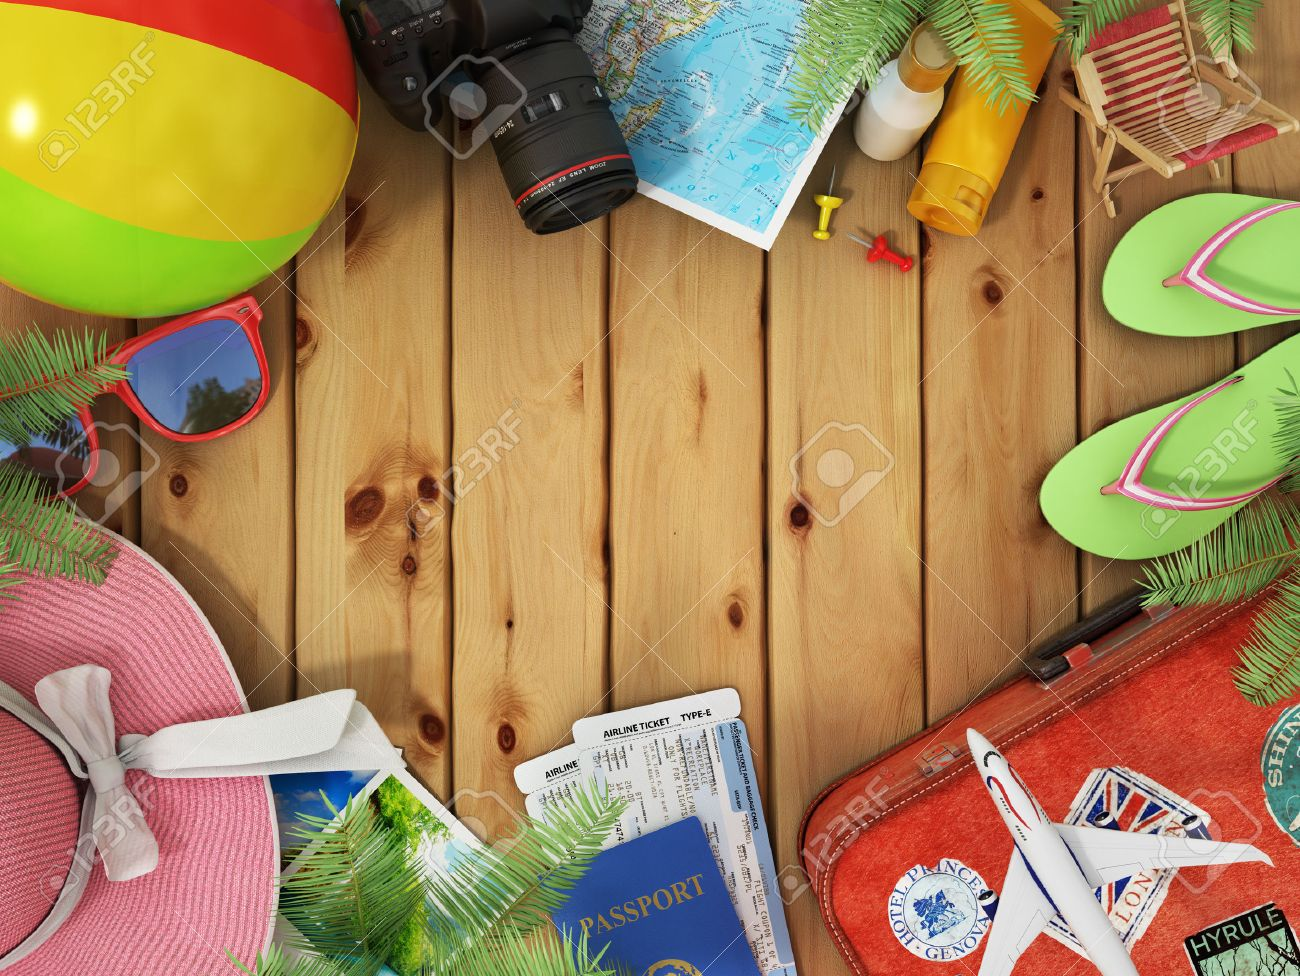 Travel concept sunbed sunglasses world map beach shoes sunscreen sunbed sunglasses world map beach shoes sunscreen passport air ticketscamera palms beach ball gumiabroncs Choice Image